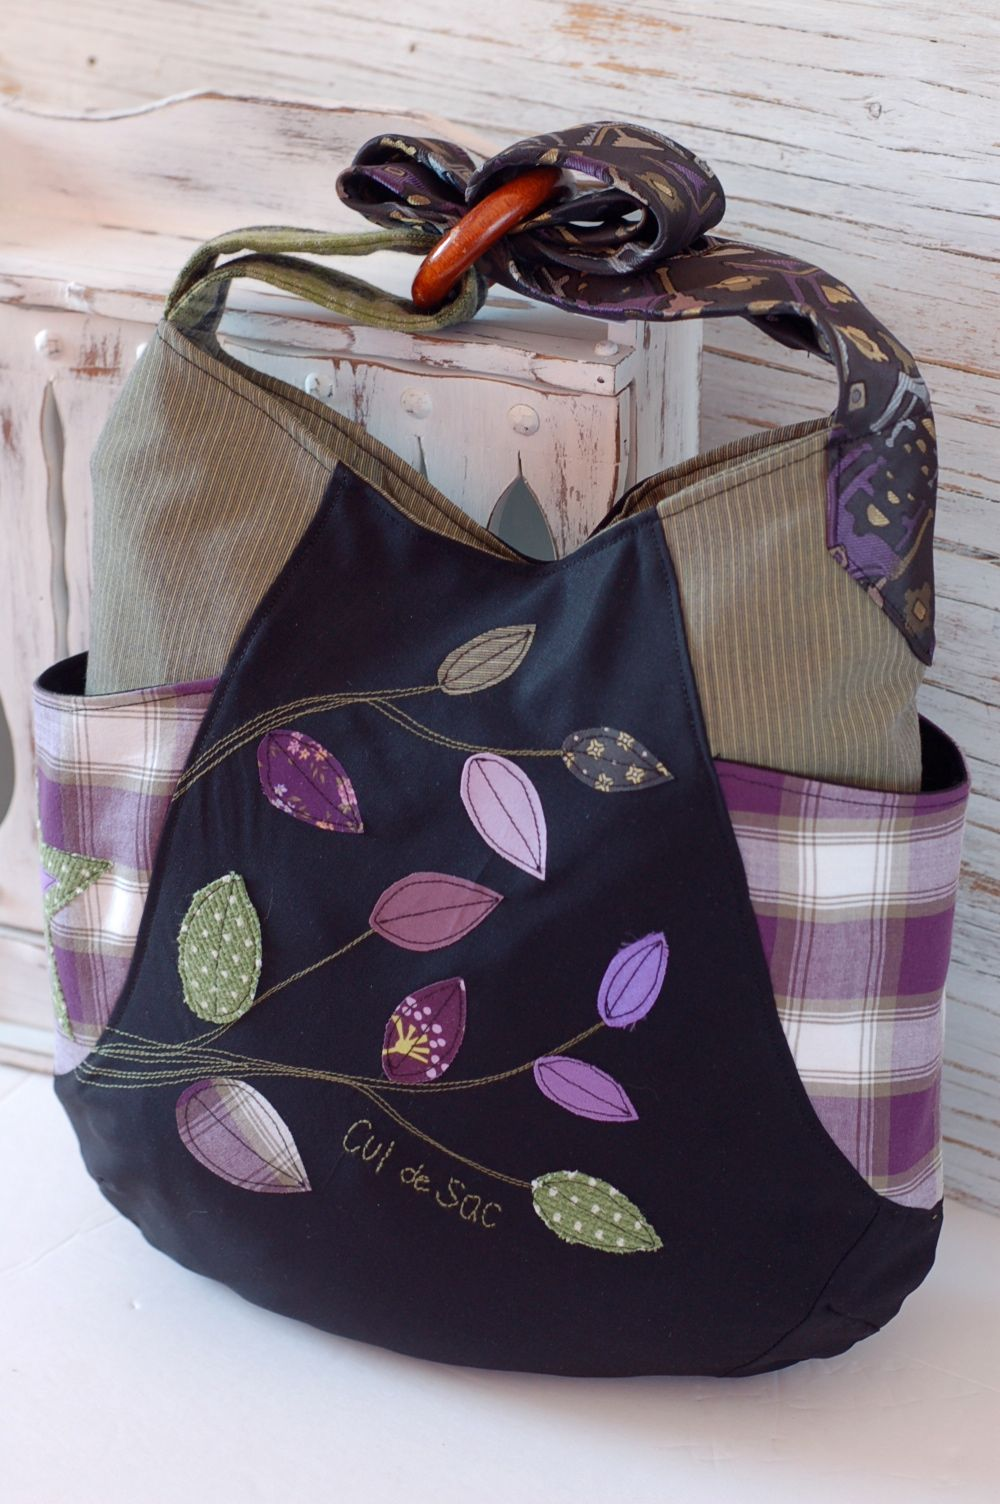 241 tote by Cul de Sac, 100% eco-friendly handmade with recycled and ...